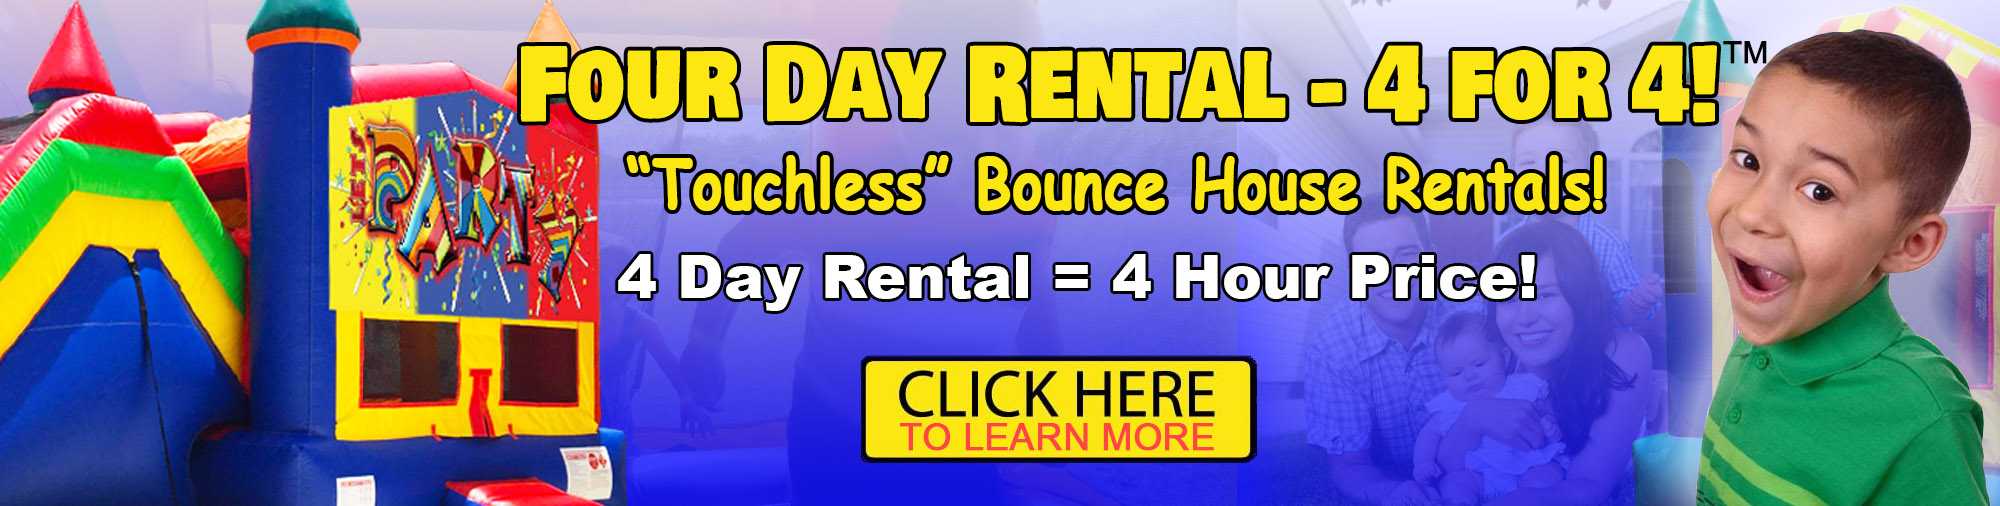 Four Day Bounce House Rentals